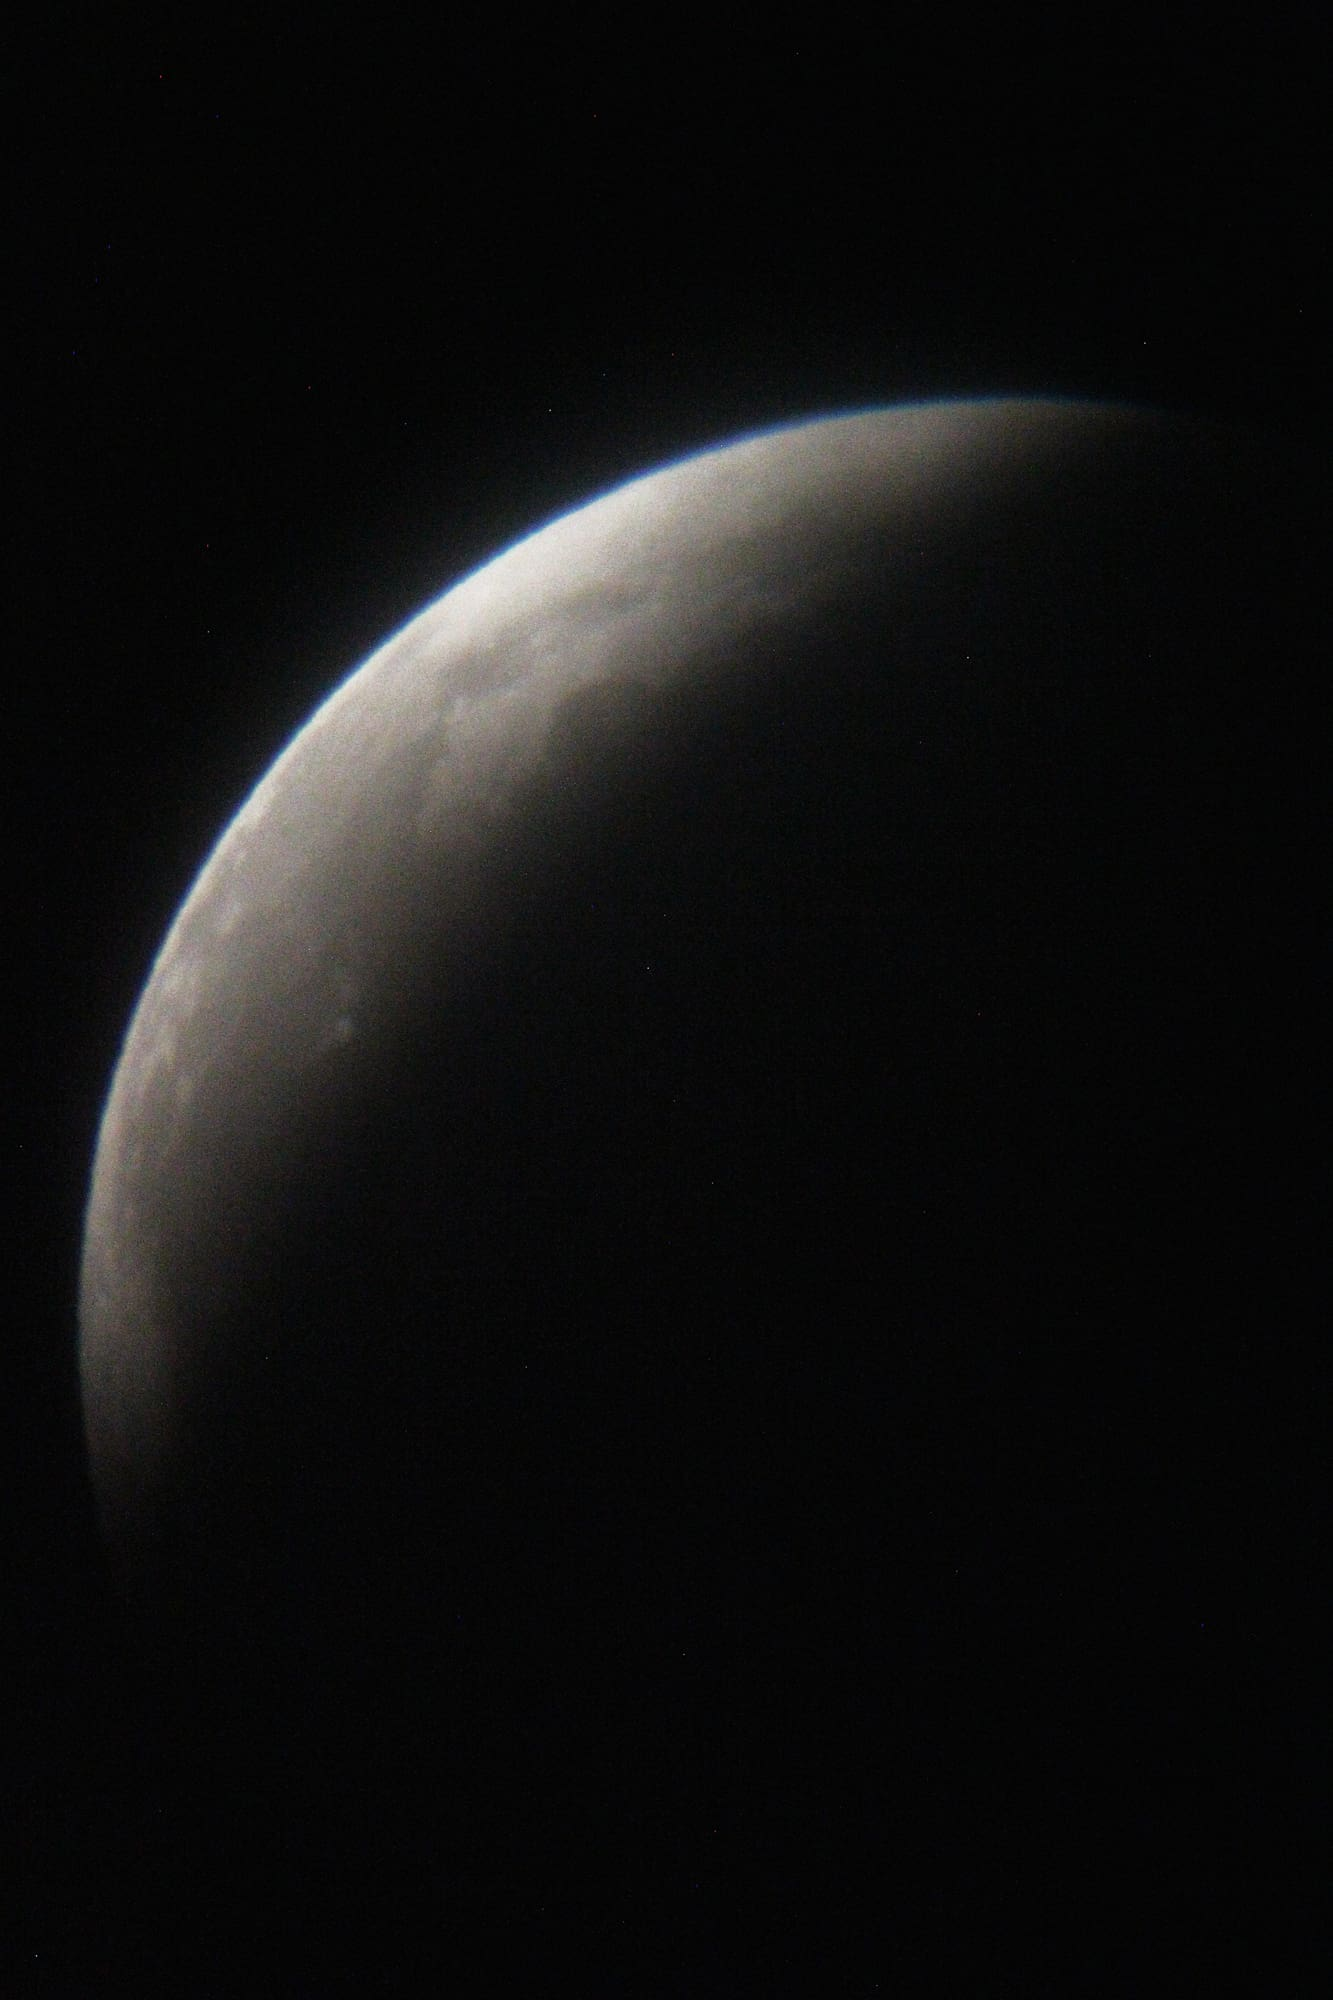 Image of the crescent moon by Sky Crosby